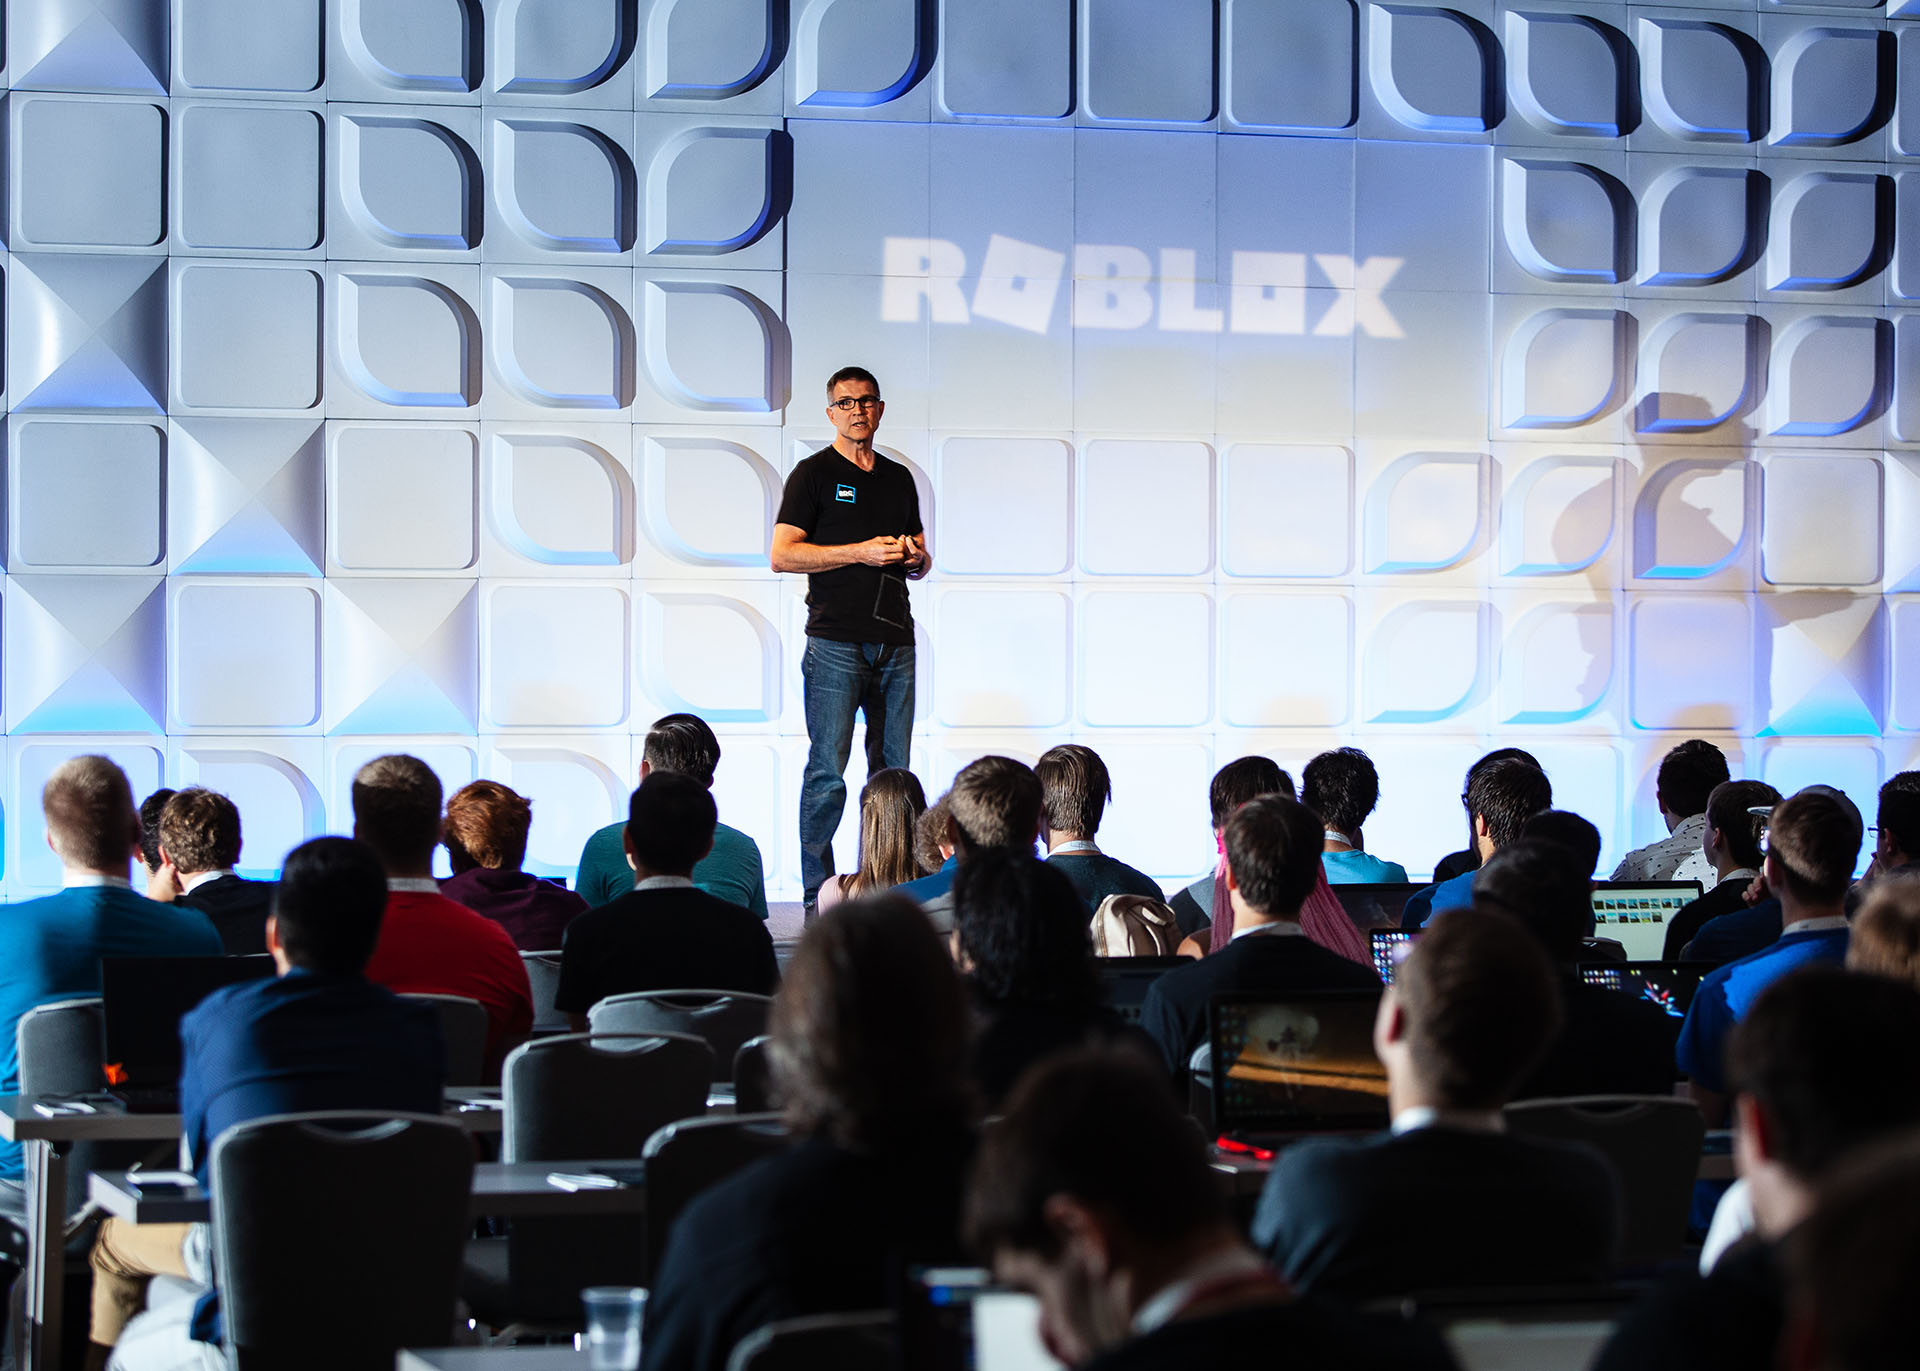 Aaa Roblox Account 3 Lessons From Roblox S Growth To Gaming Dominance Techcrunch